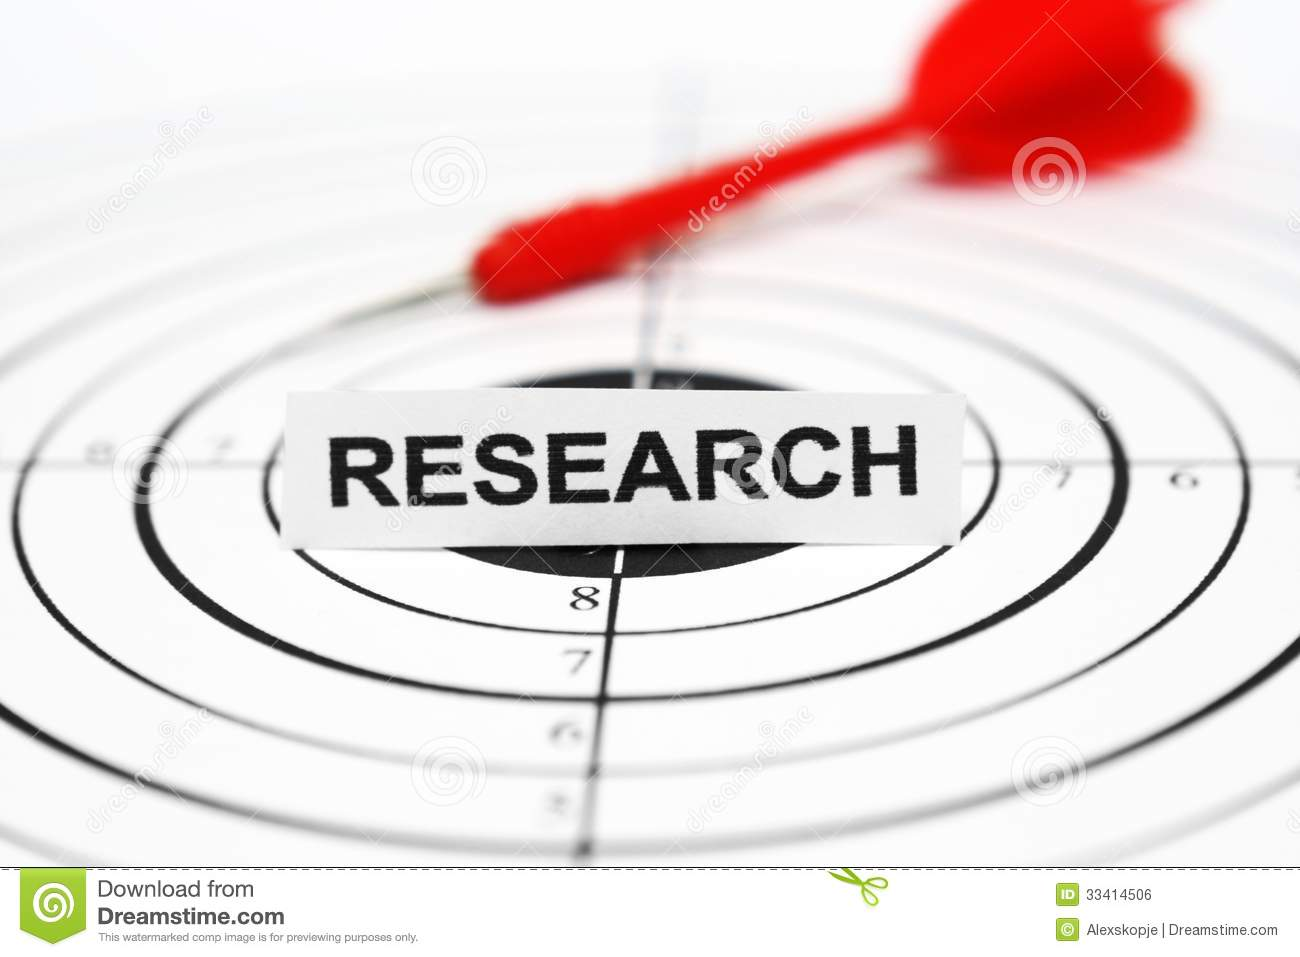 Nationwide Skiptracing Reporting and Asset Research